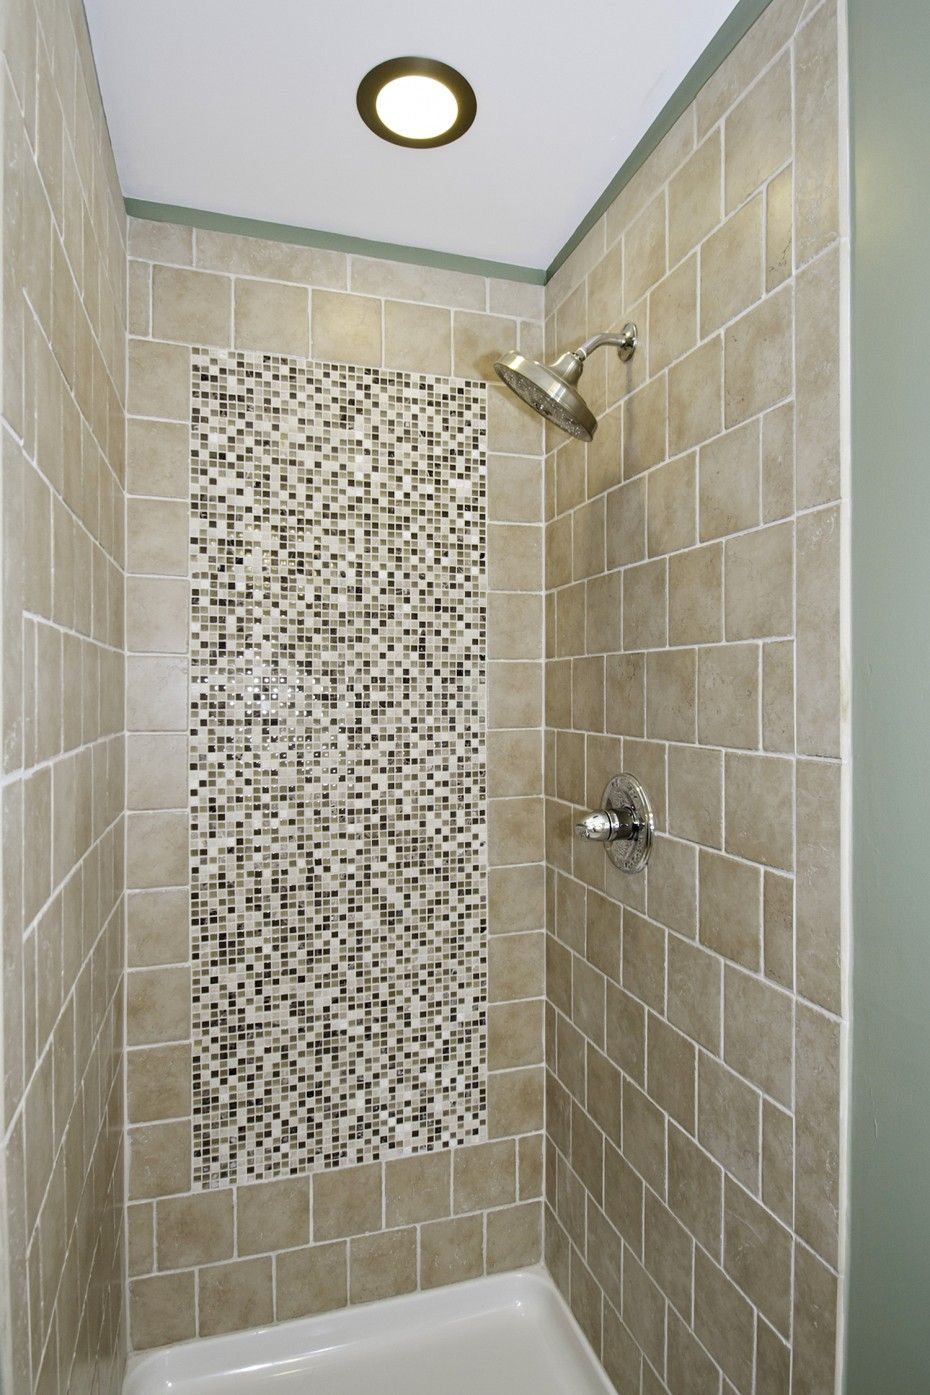 Bathroom inspiration superb stand up shower with for Bathroom remodel 70 square feet